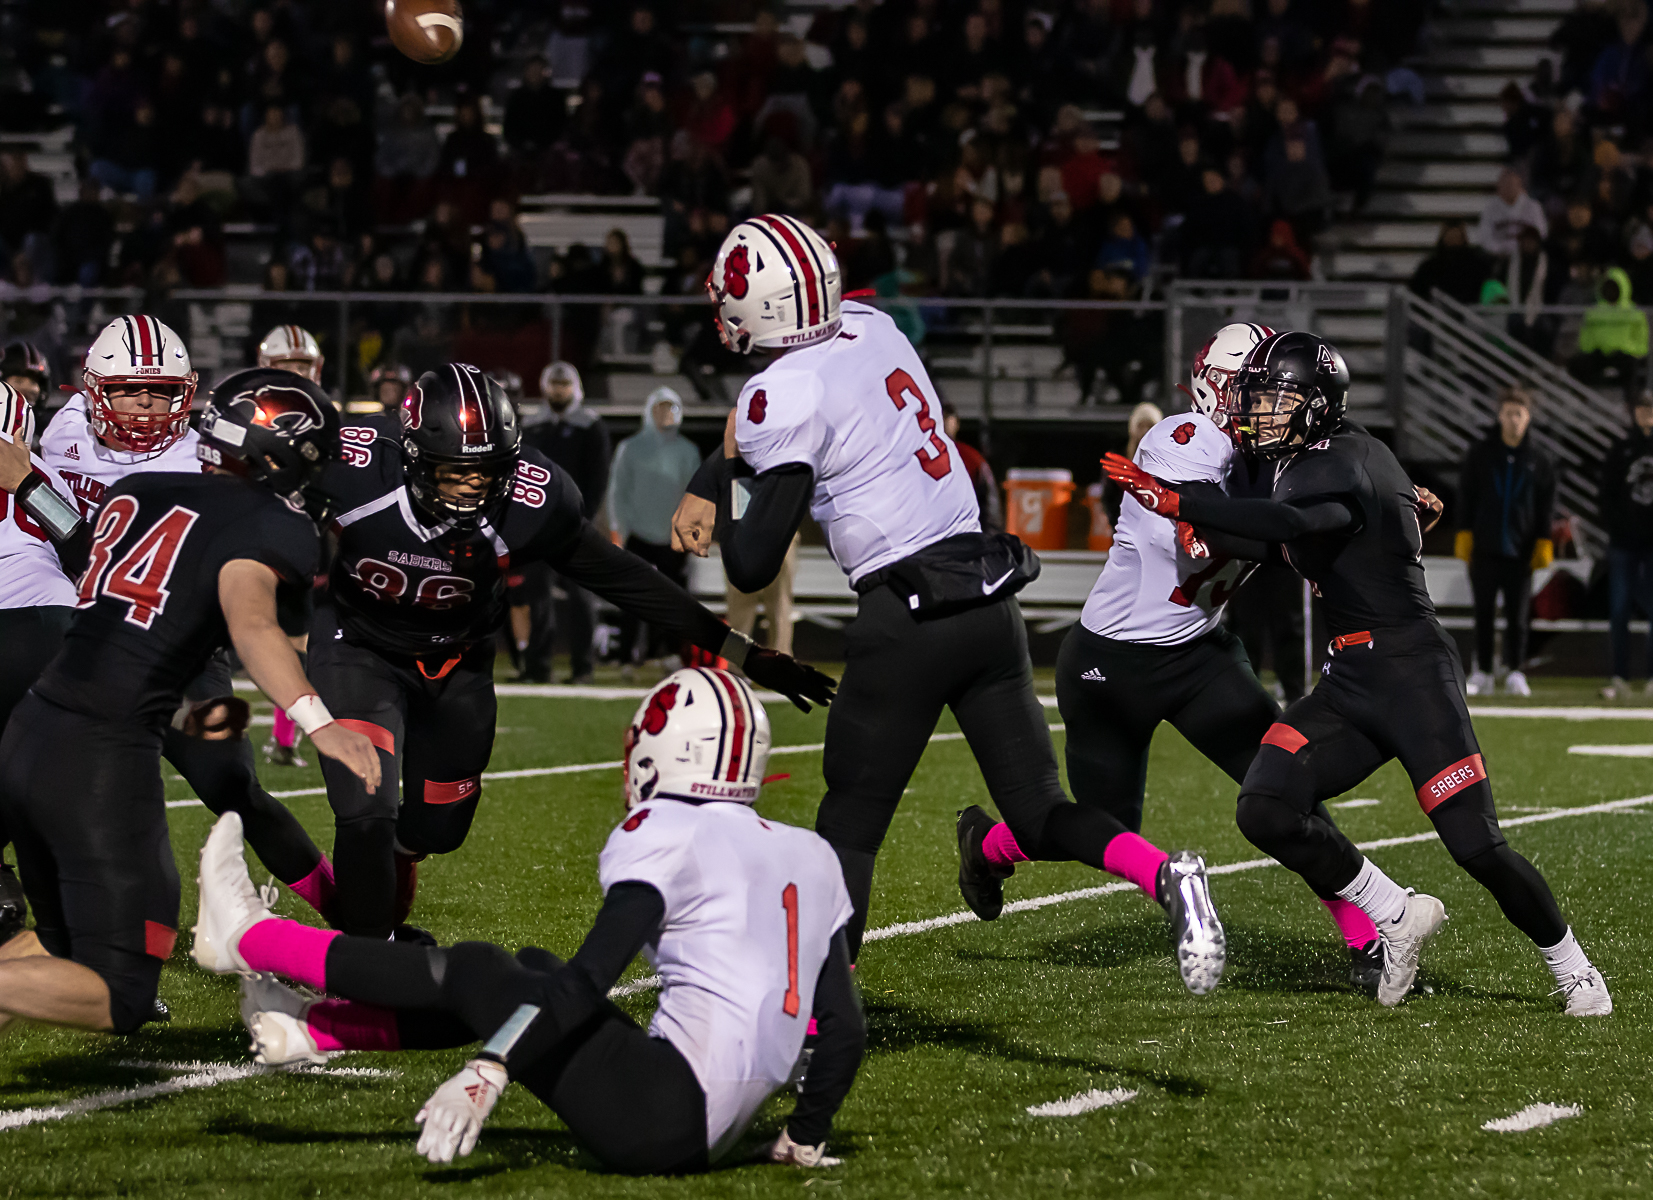 Shakopee's aggressive defense was key in its 34-7 win against Stillwater on Friday night in Shakopee. Photo by Gary Mukai, SportsEngine